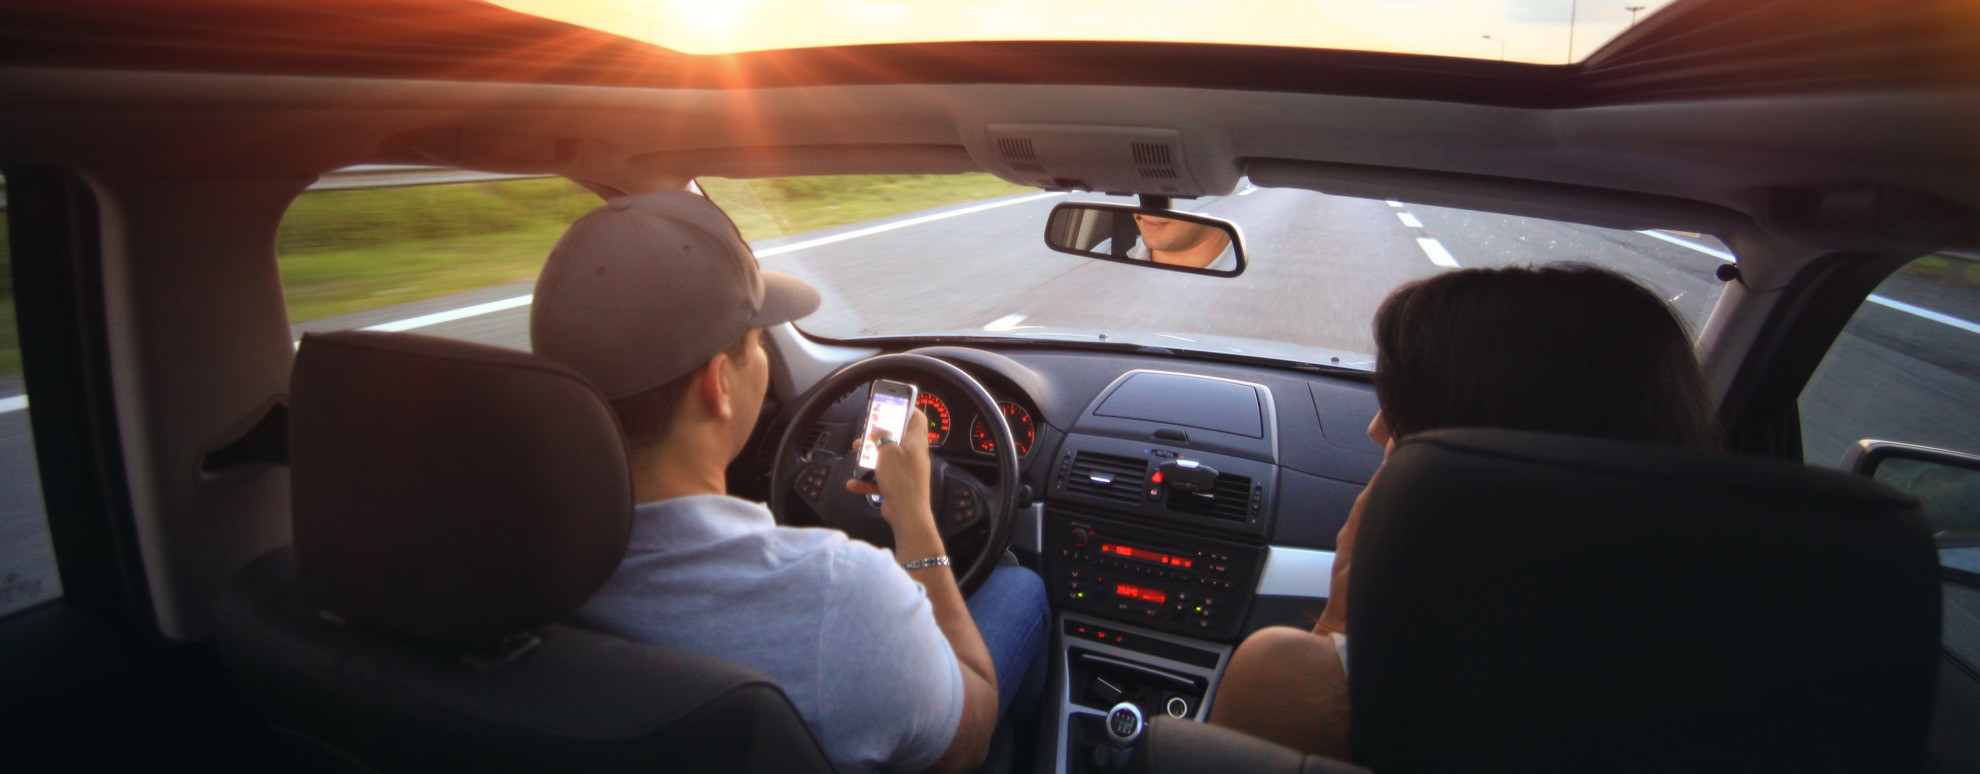 Reasons Why You Need To Compare Auto Insurance